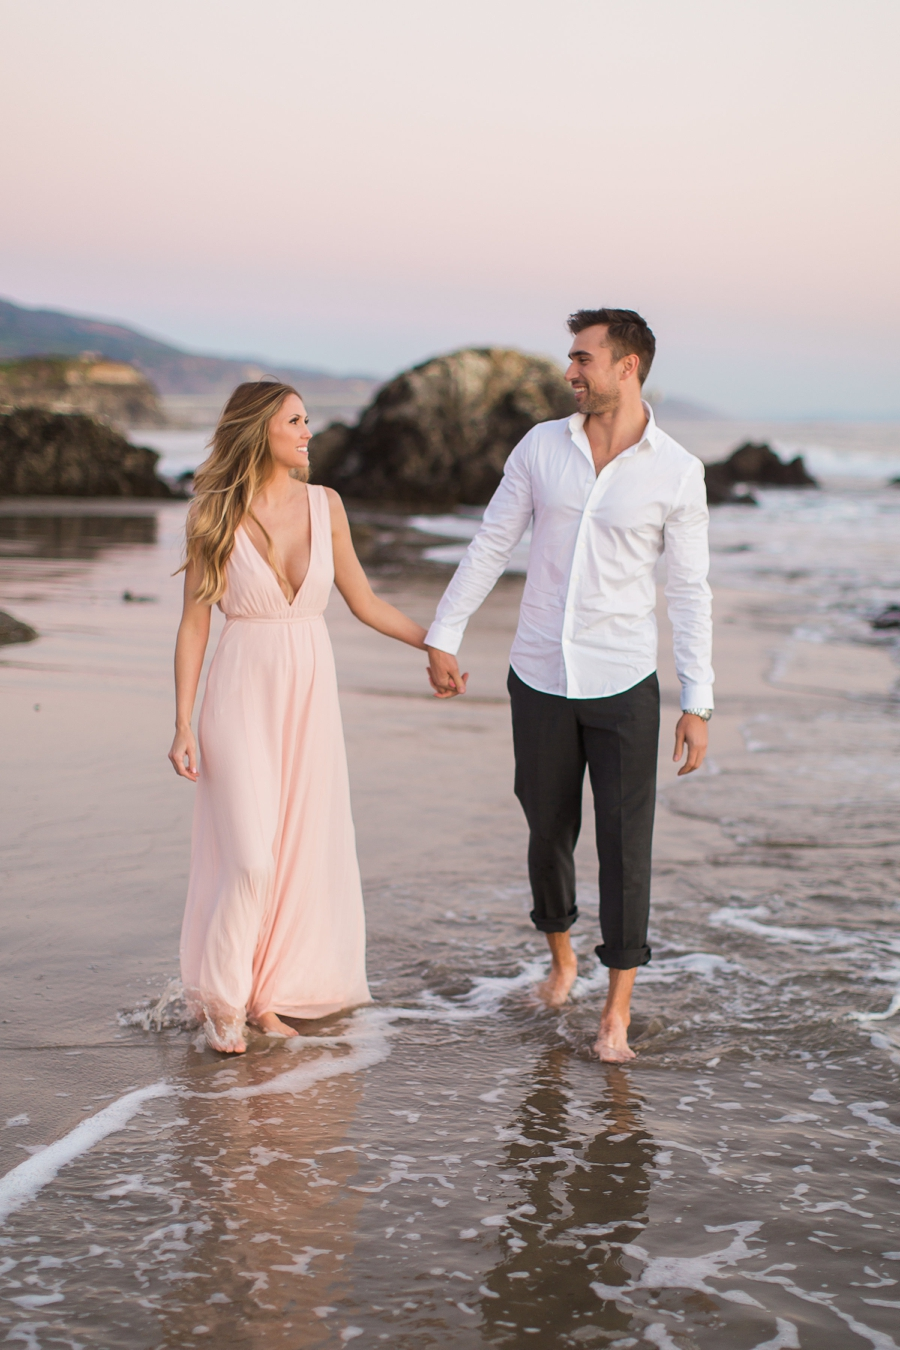 taylor_kinzie_photography_los_angeles_wedding_photographer_beach_engagement_session_0033